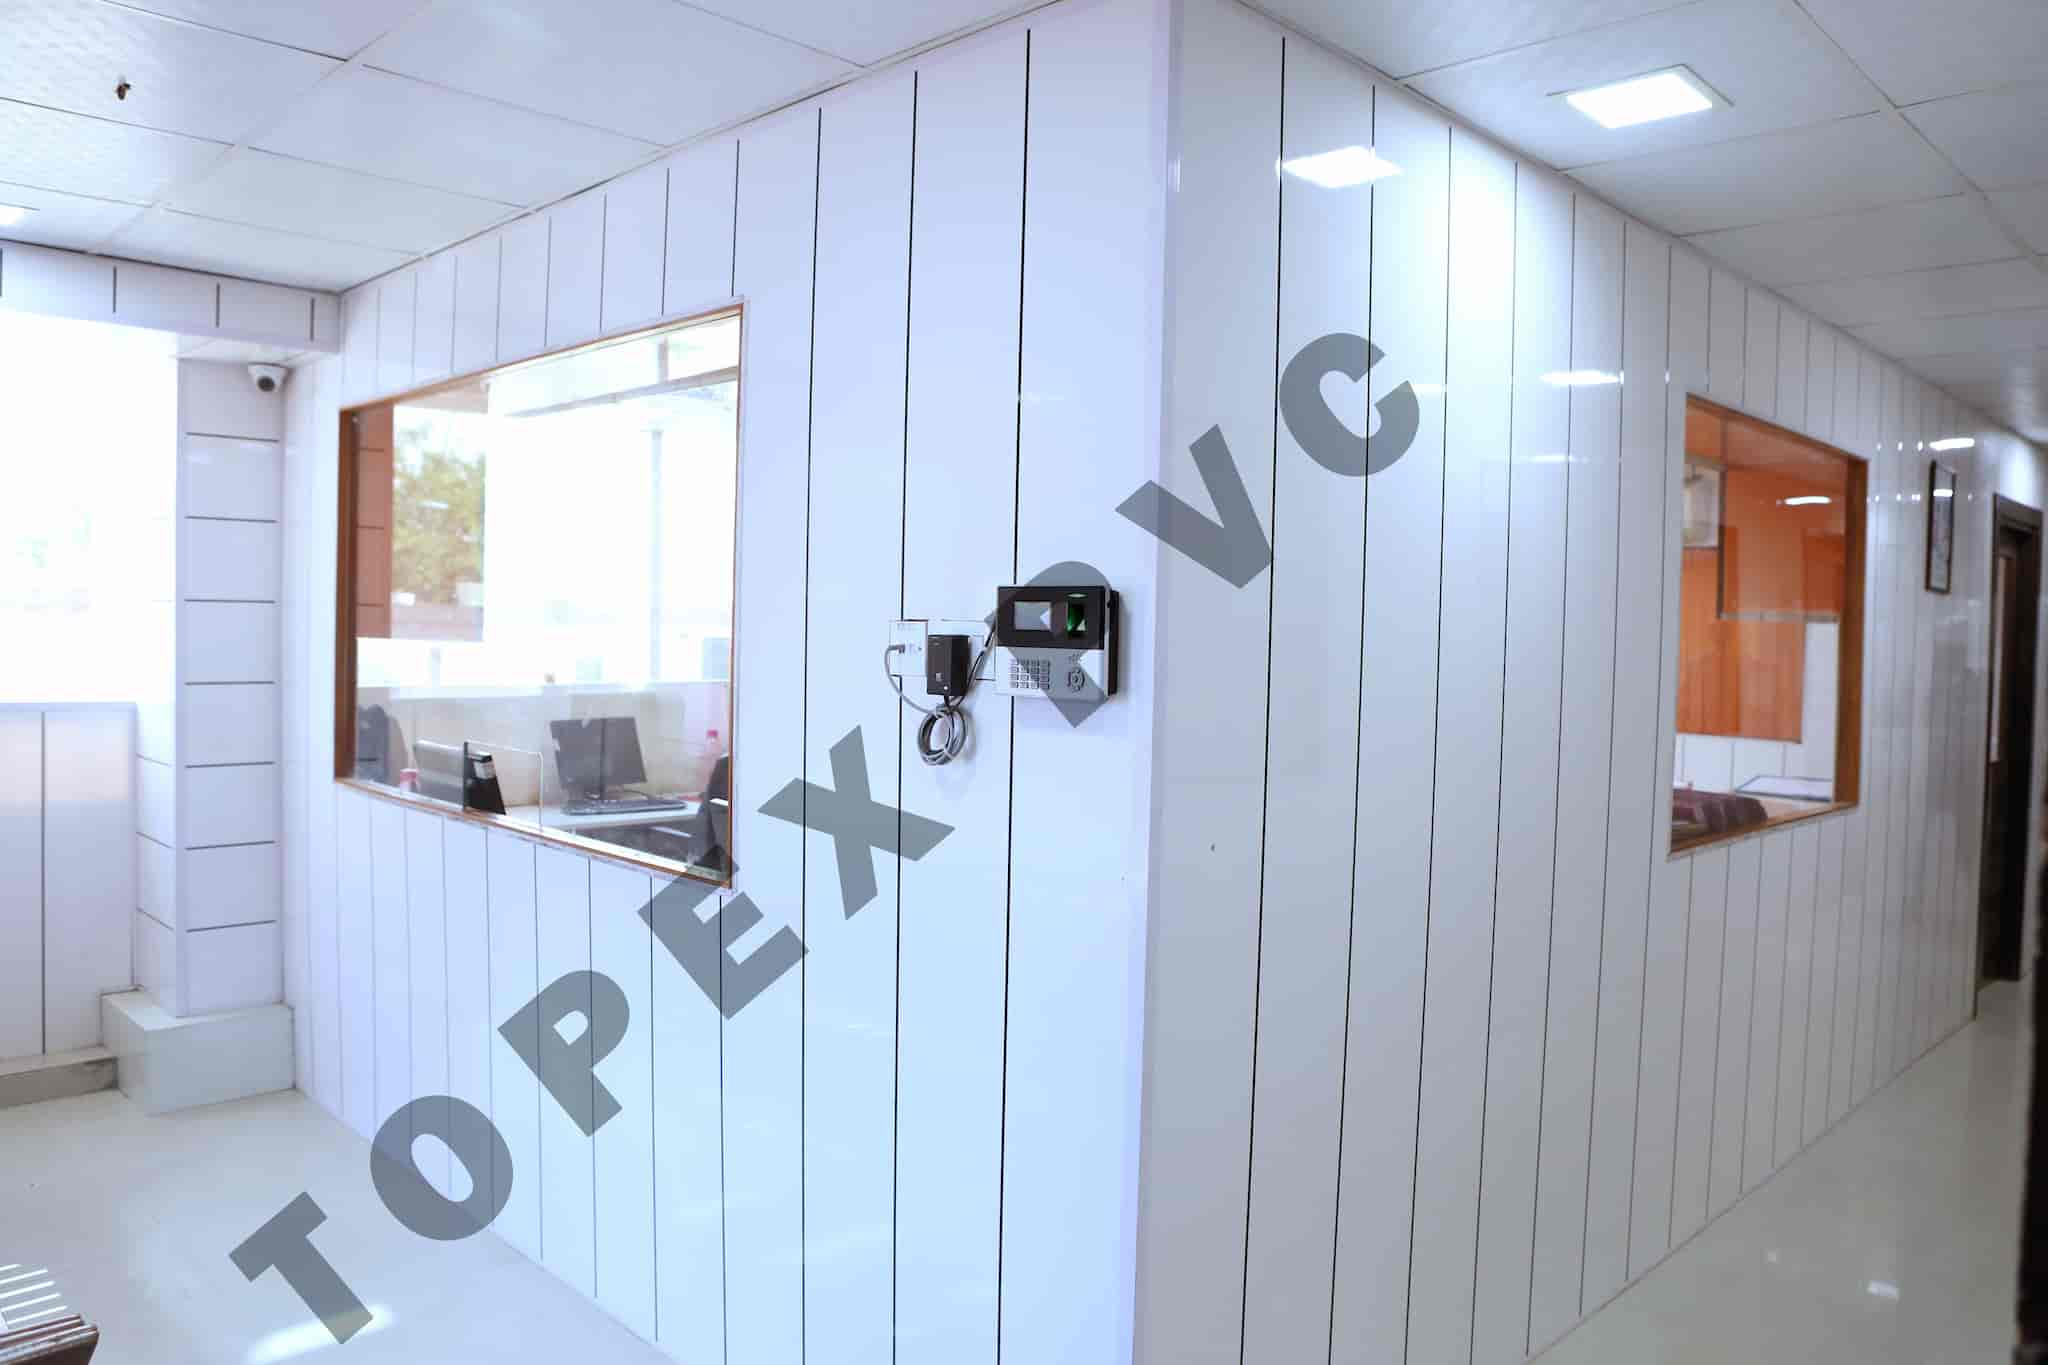 Topex PVC Wall Ceiling Panels Photos, Sector 65, Noida- Pictures ...